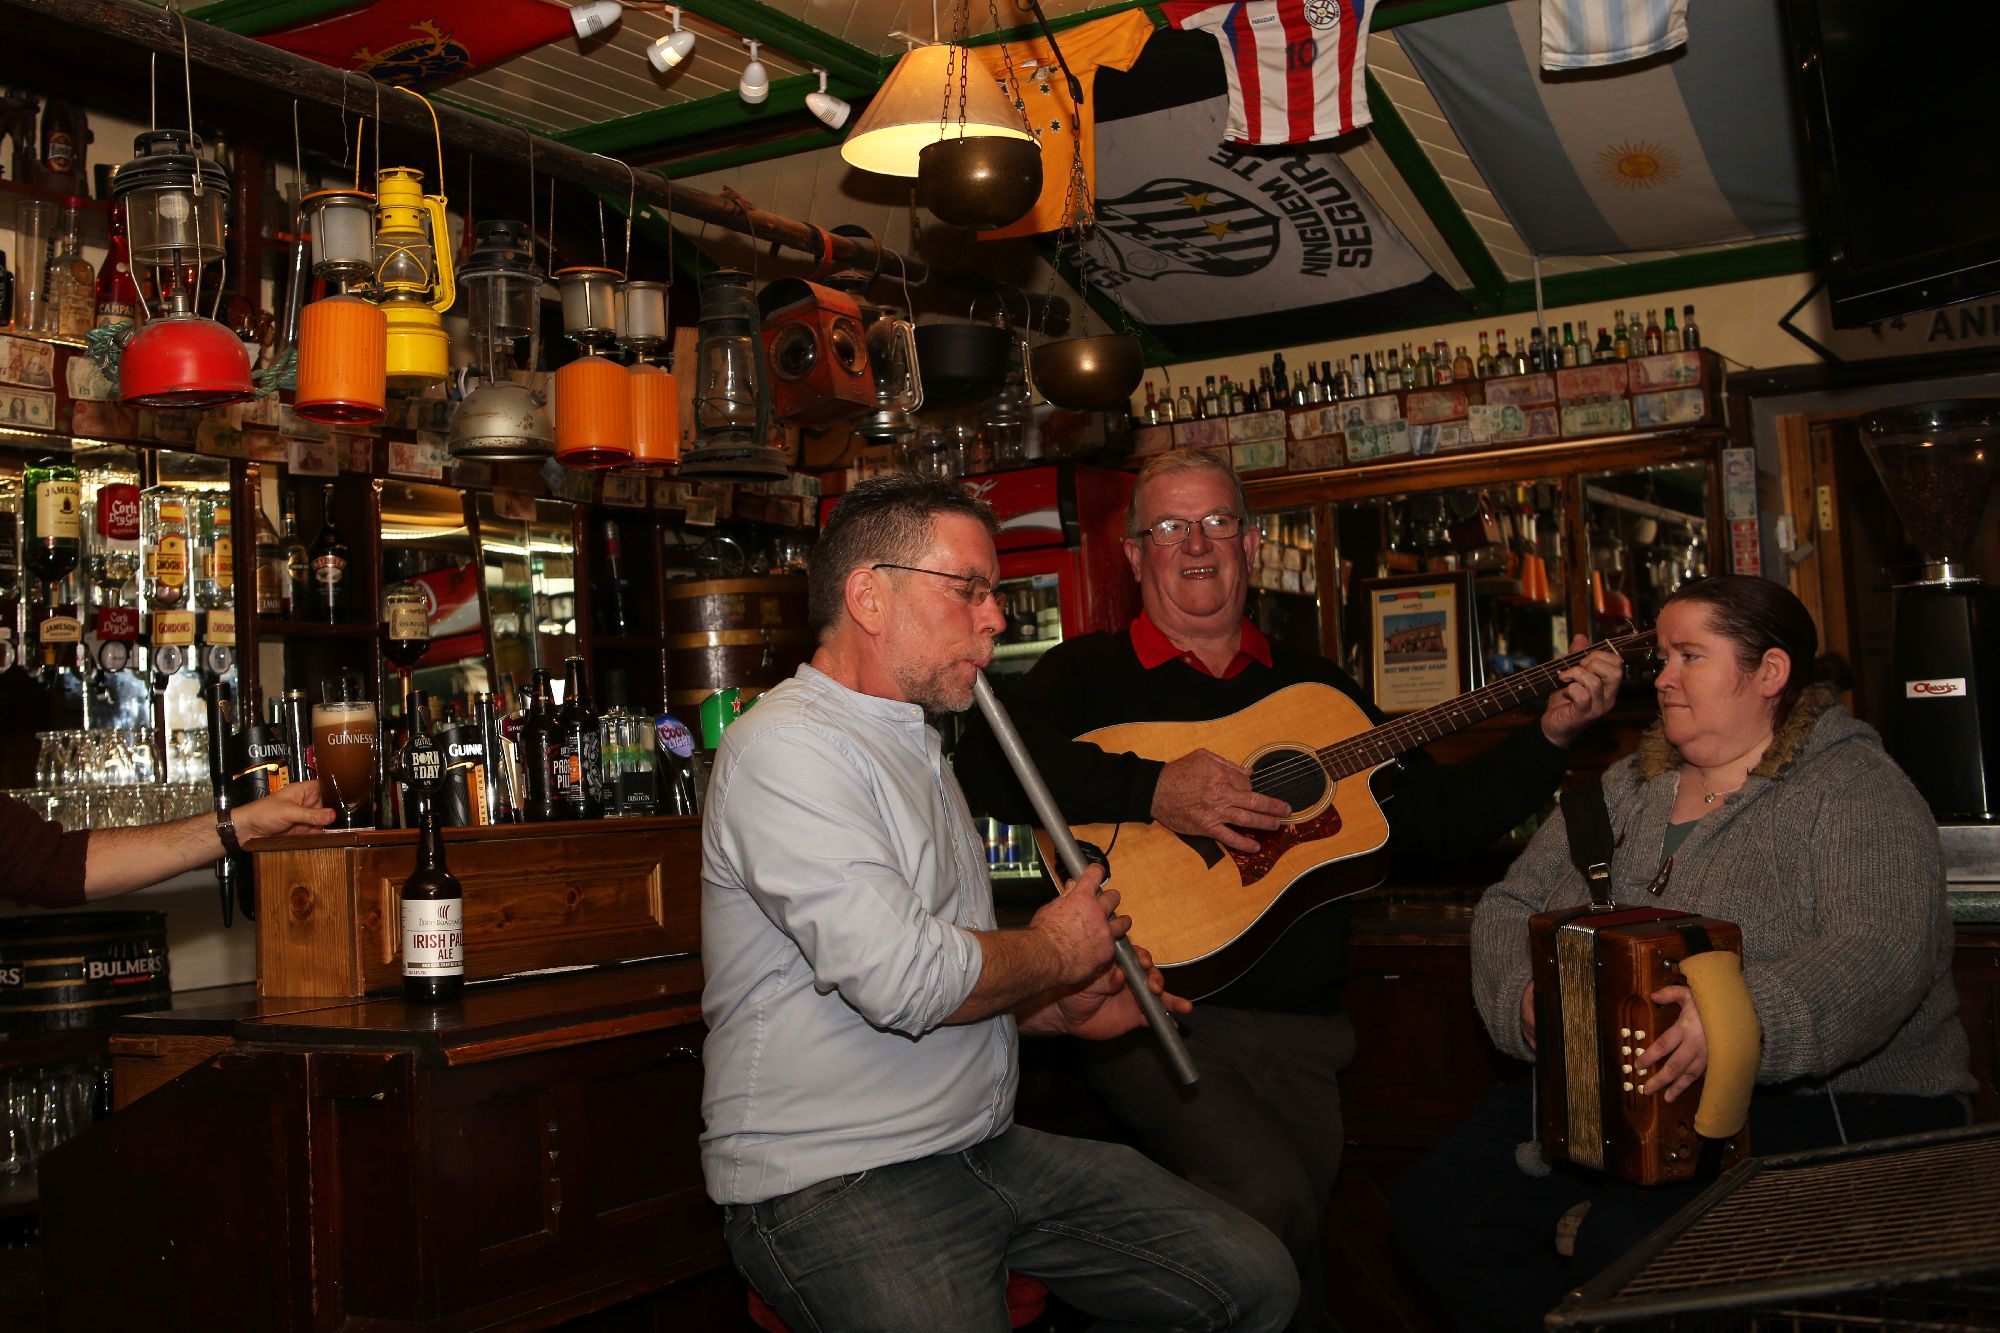 Interior of Irish Bar at the Glyde Inn with Traditional Musicians